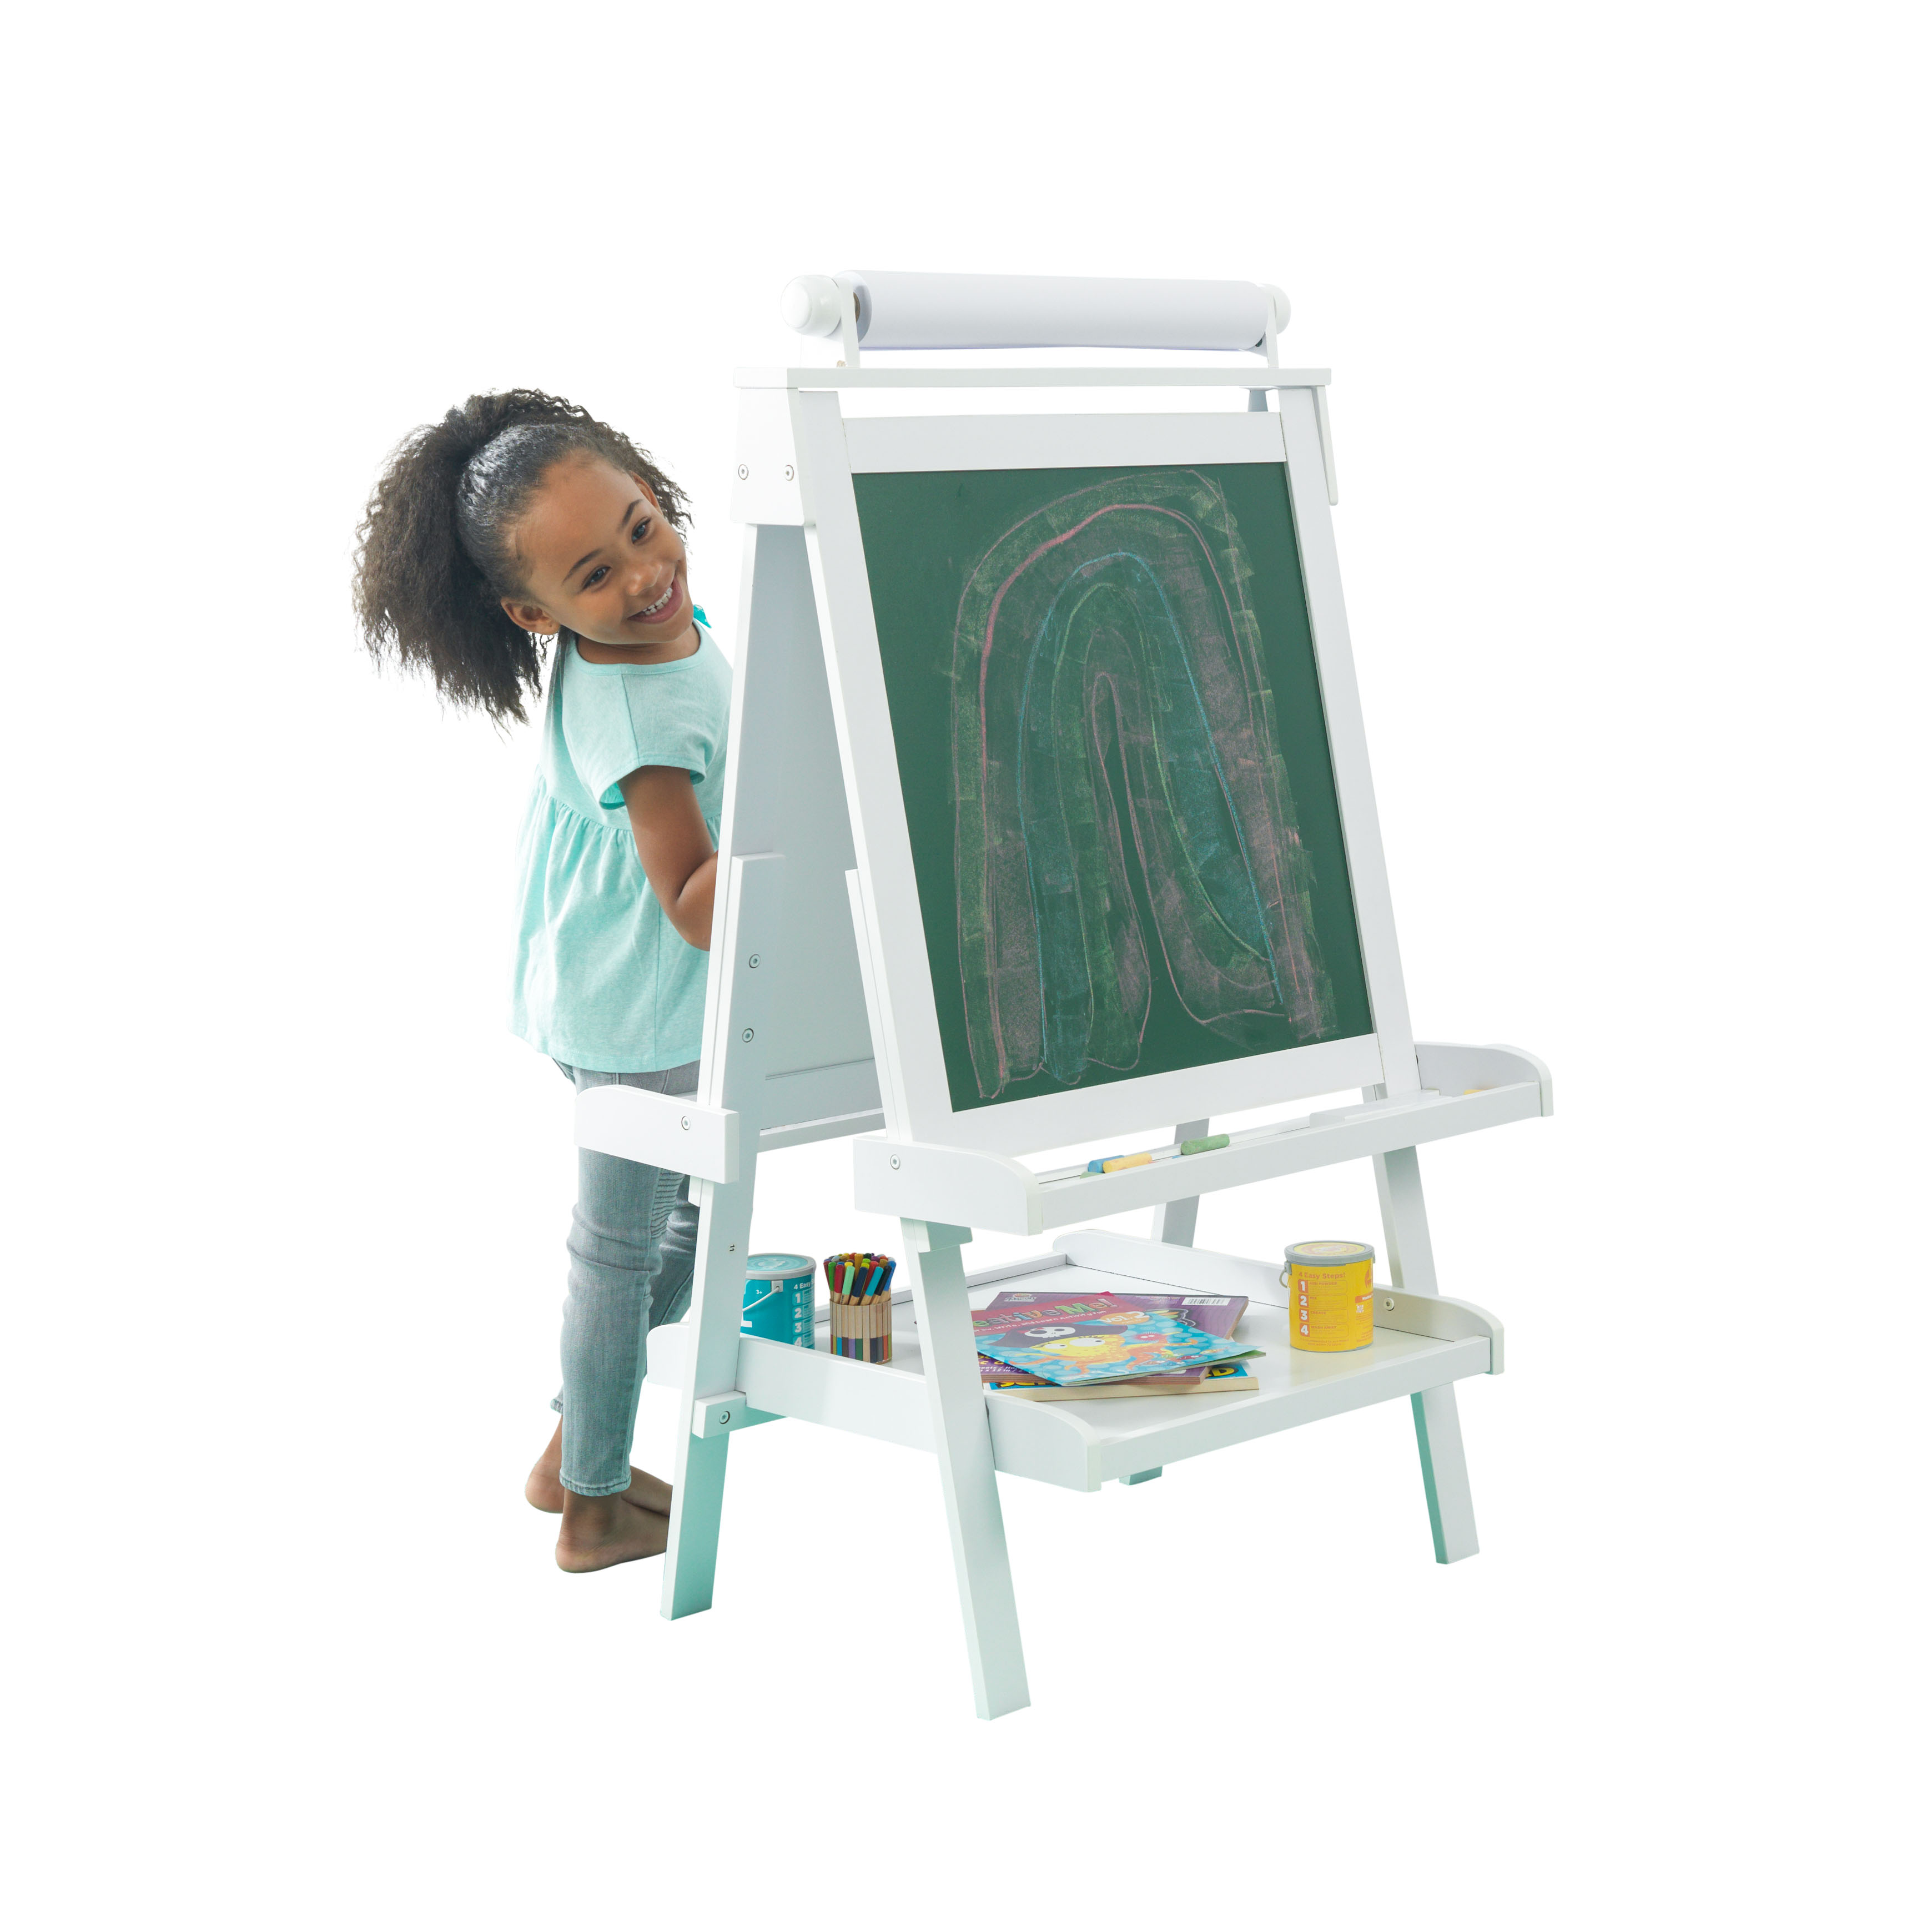 KidKraft Deluxe Wood Easel, White with a Paper Roll, Anti-Spill Paint CUps, a Chalkboard, a Whiteboard and Trays